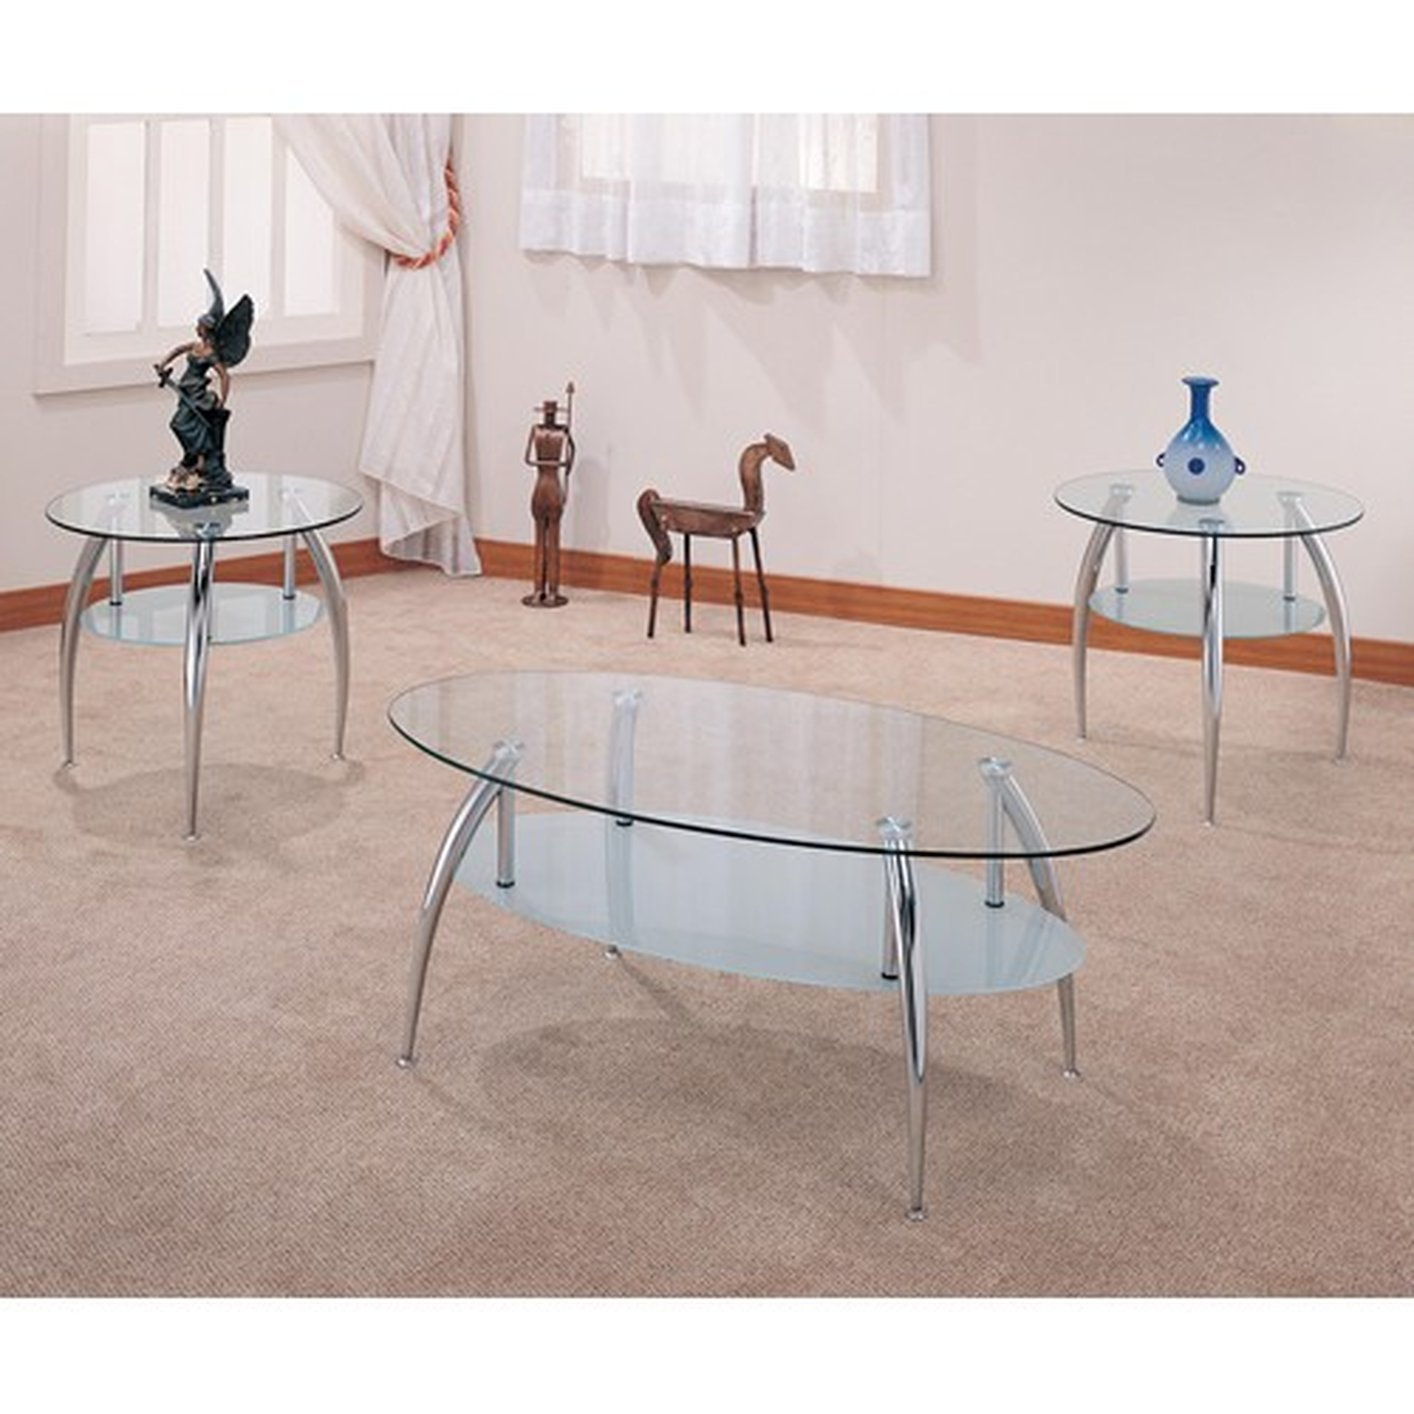 ... Silver Glass Coffee Table Set Steal A Sofa Furniture Outlet Los